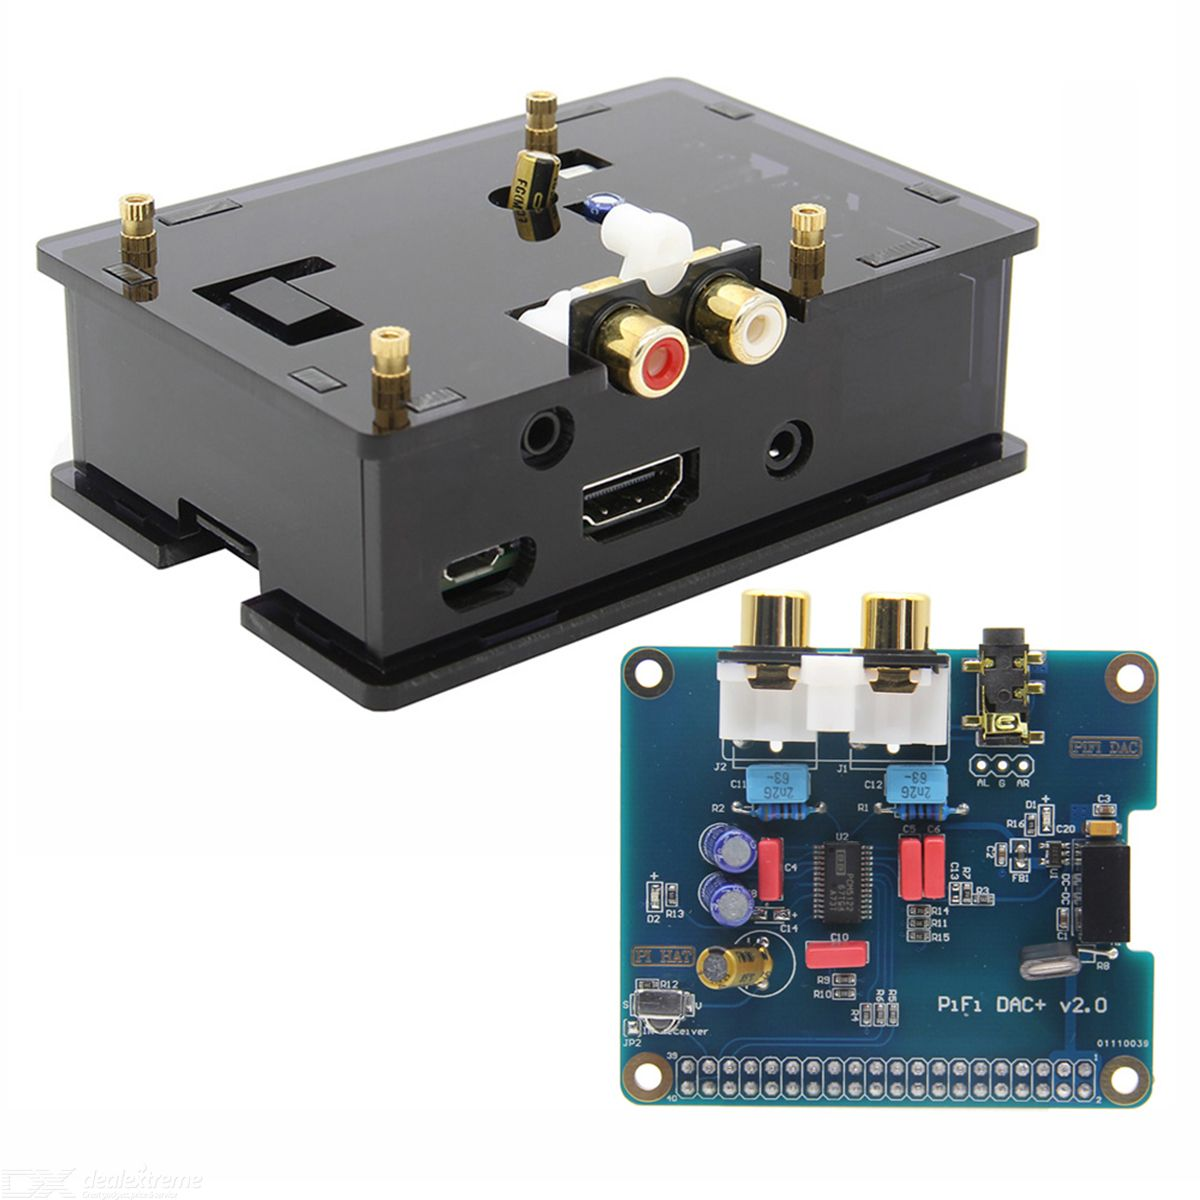 PiFi HIFI DAC+ Audio Card Pinboard  /  Case for Raspberry Pi 2